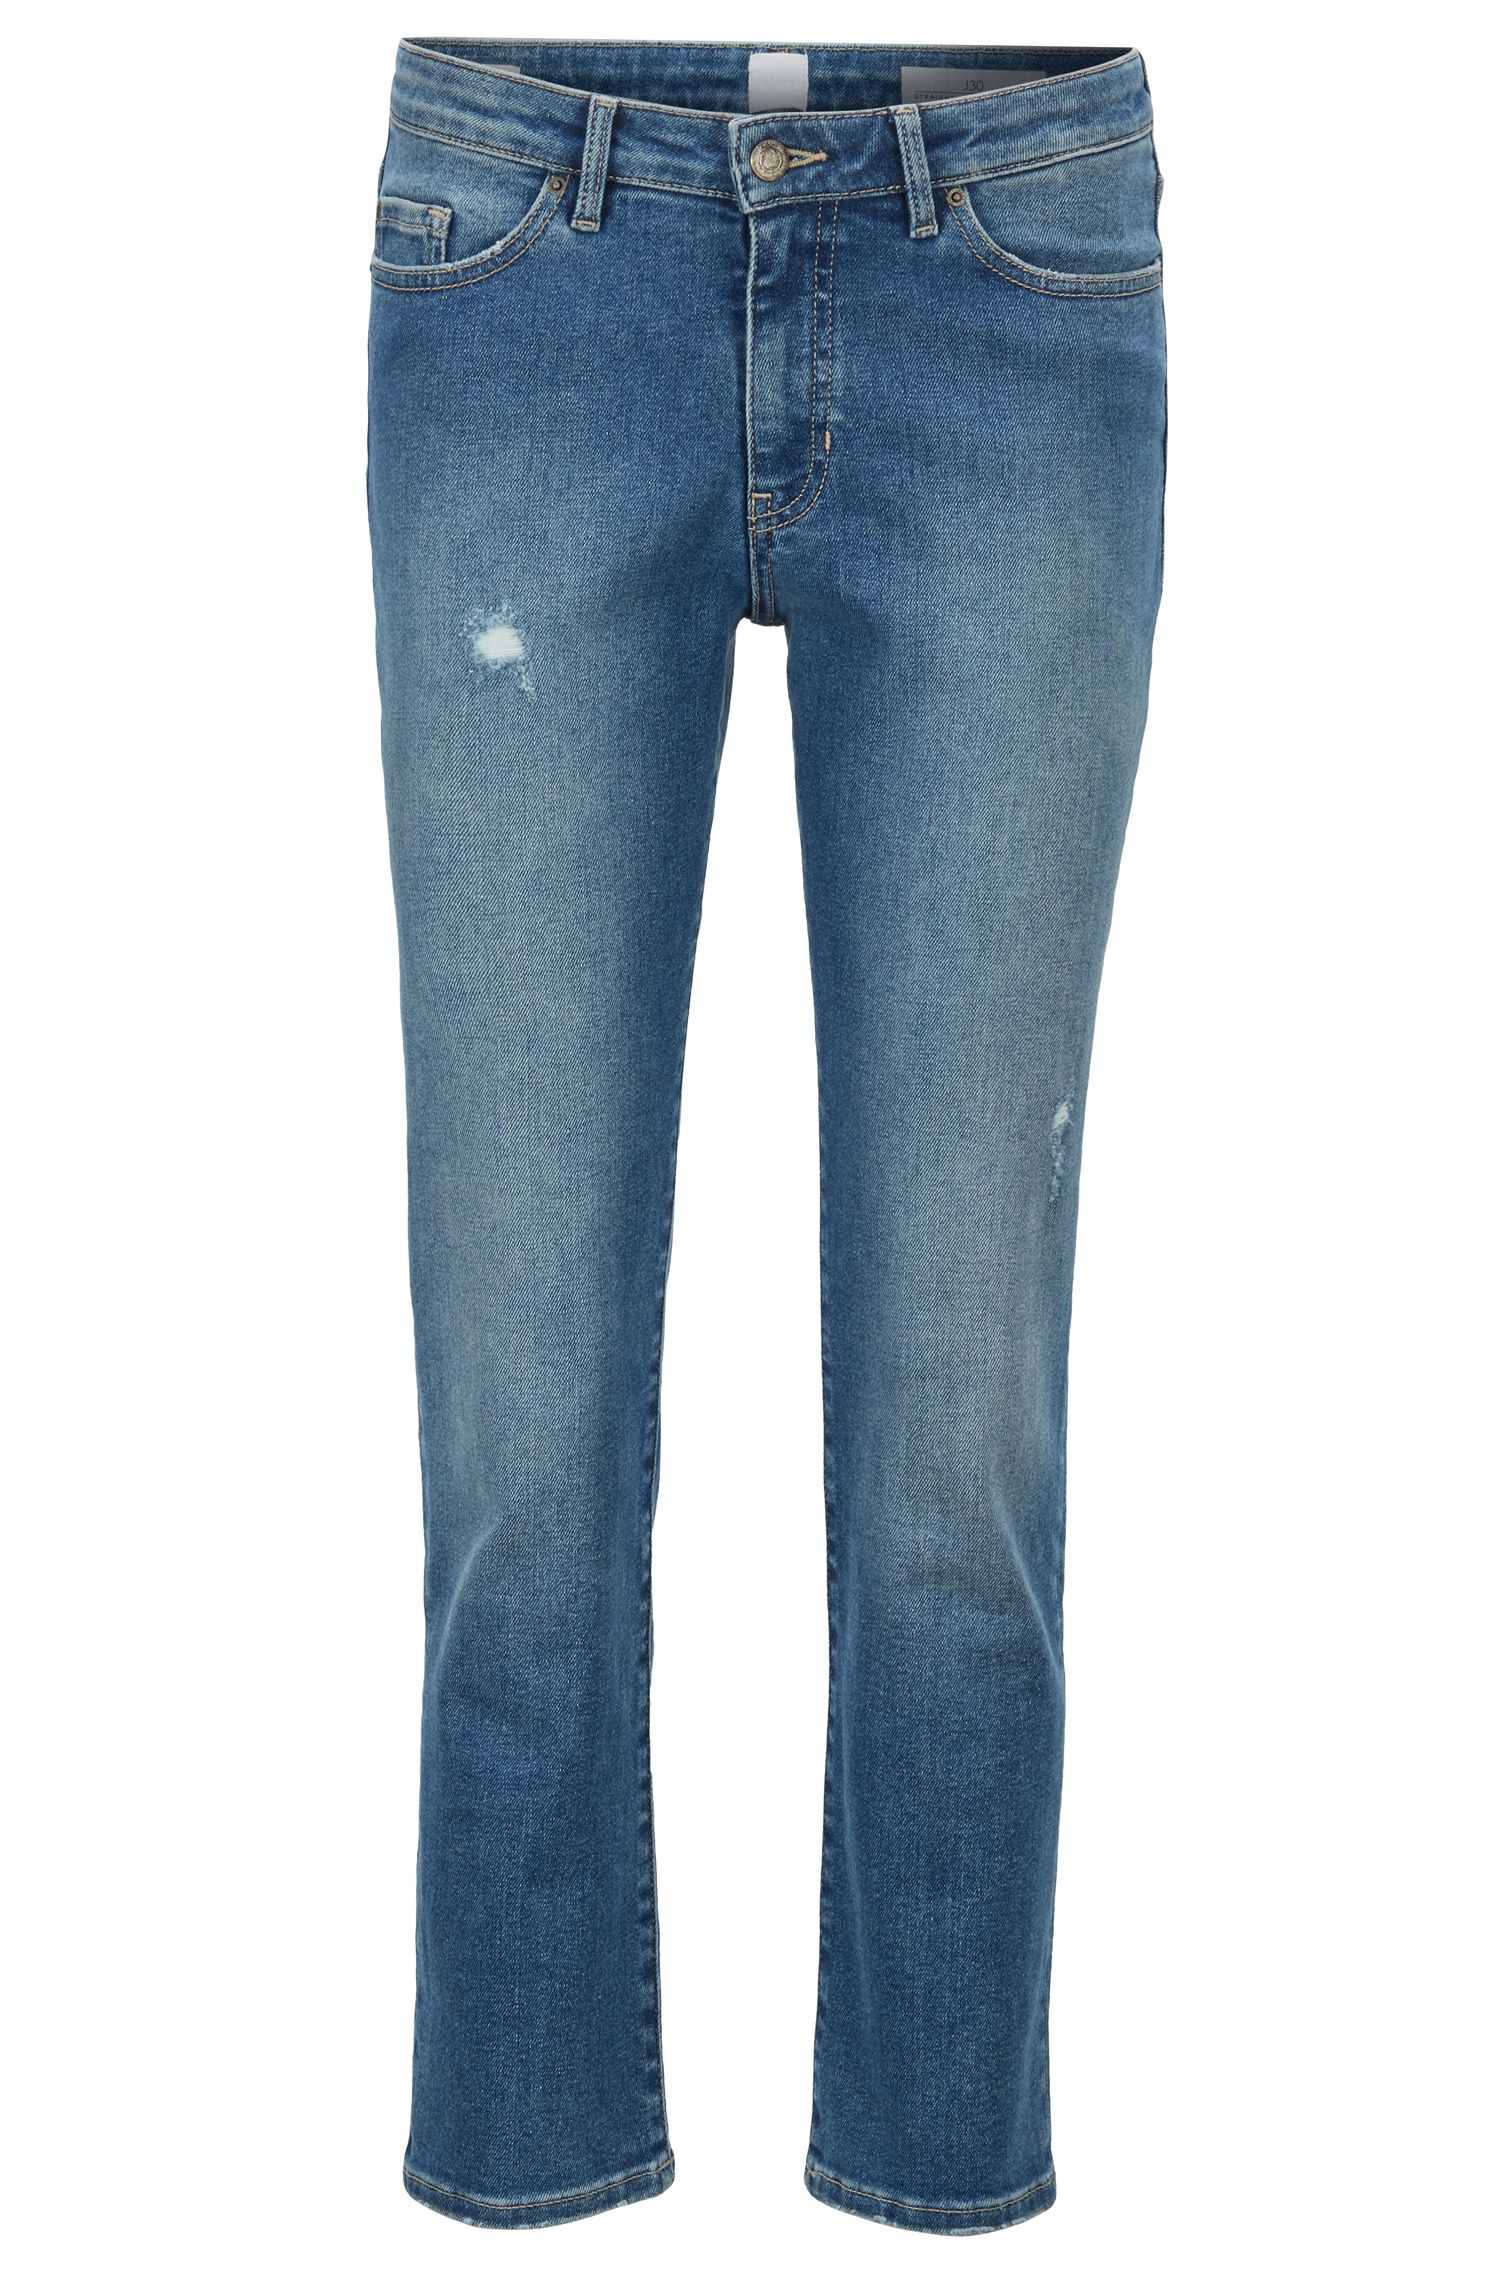 Regular-Fit Jeans aus Super-Stretch-Denim in Cropped-Länge, Blau